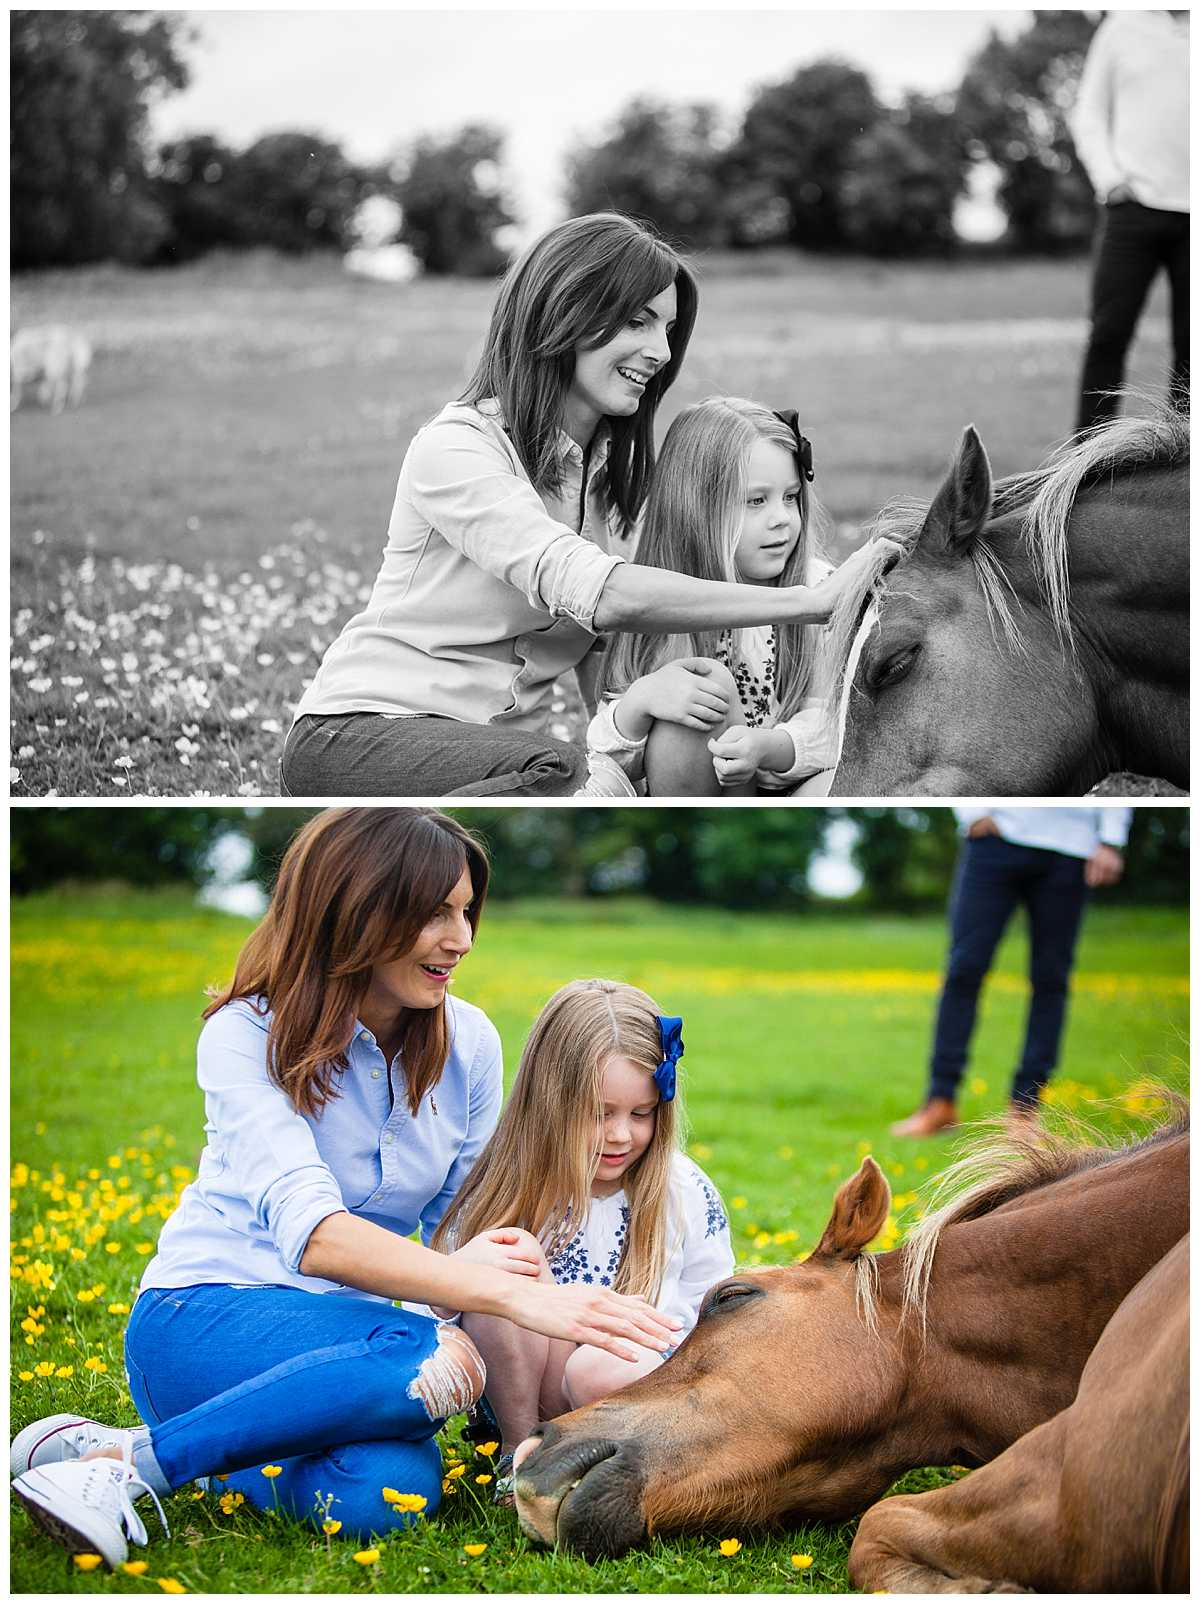 mum and daughter sat on the grass with a brown horse making a fuss of them -whitchurch family photographer